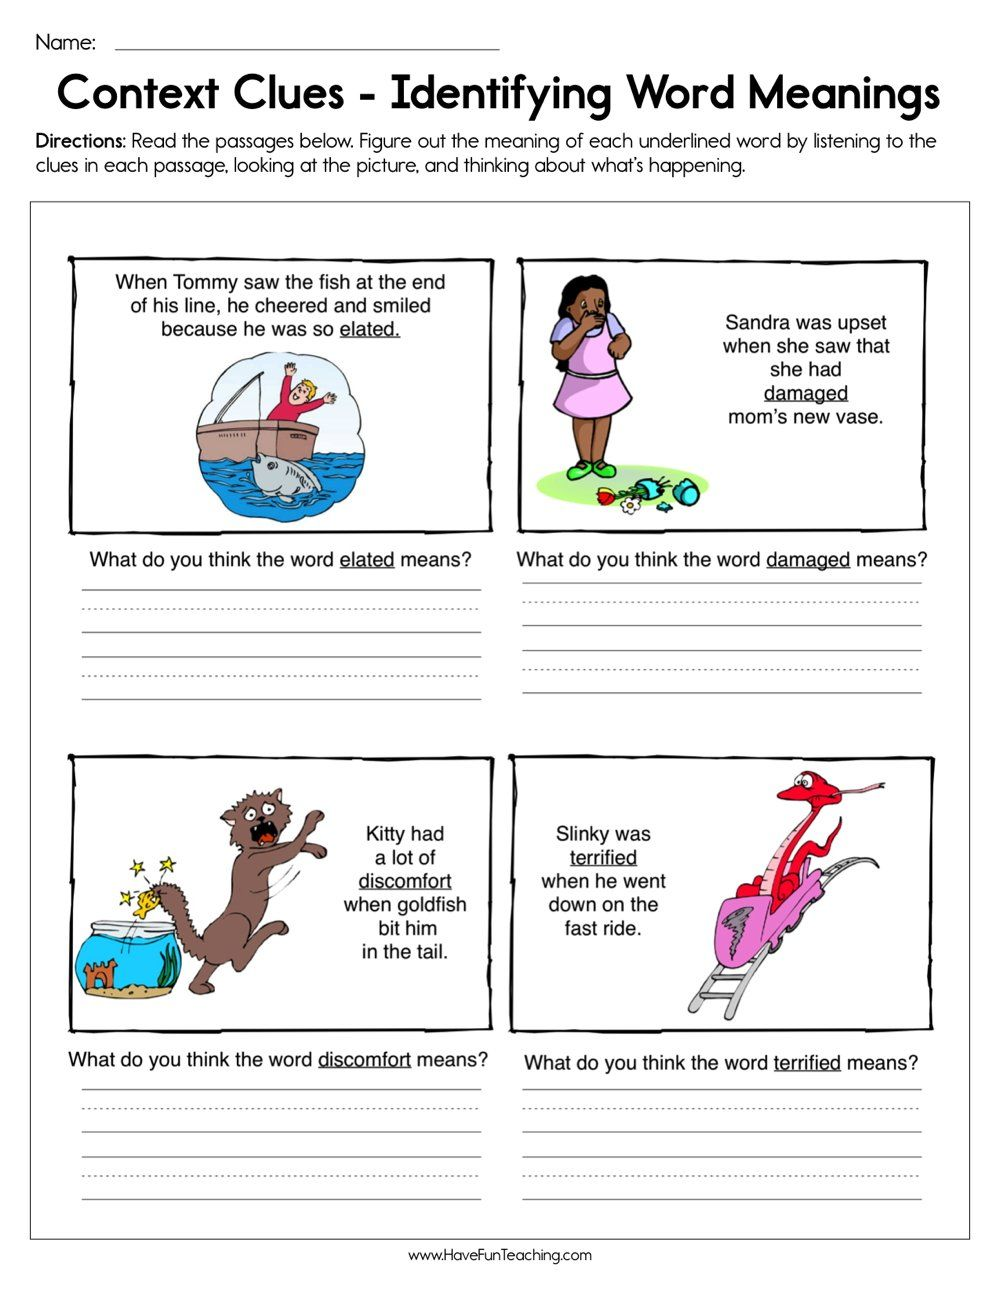 Context Clues Identifying Word Meaning Worksheet Context Clues Context Clues Worksheets Context Clues Activities [ 1294 x 1000 Pixel ]